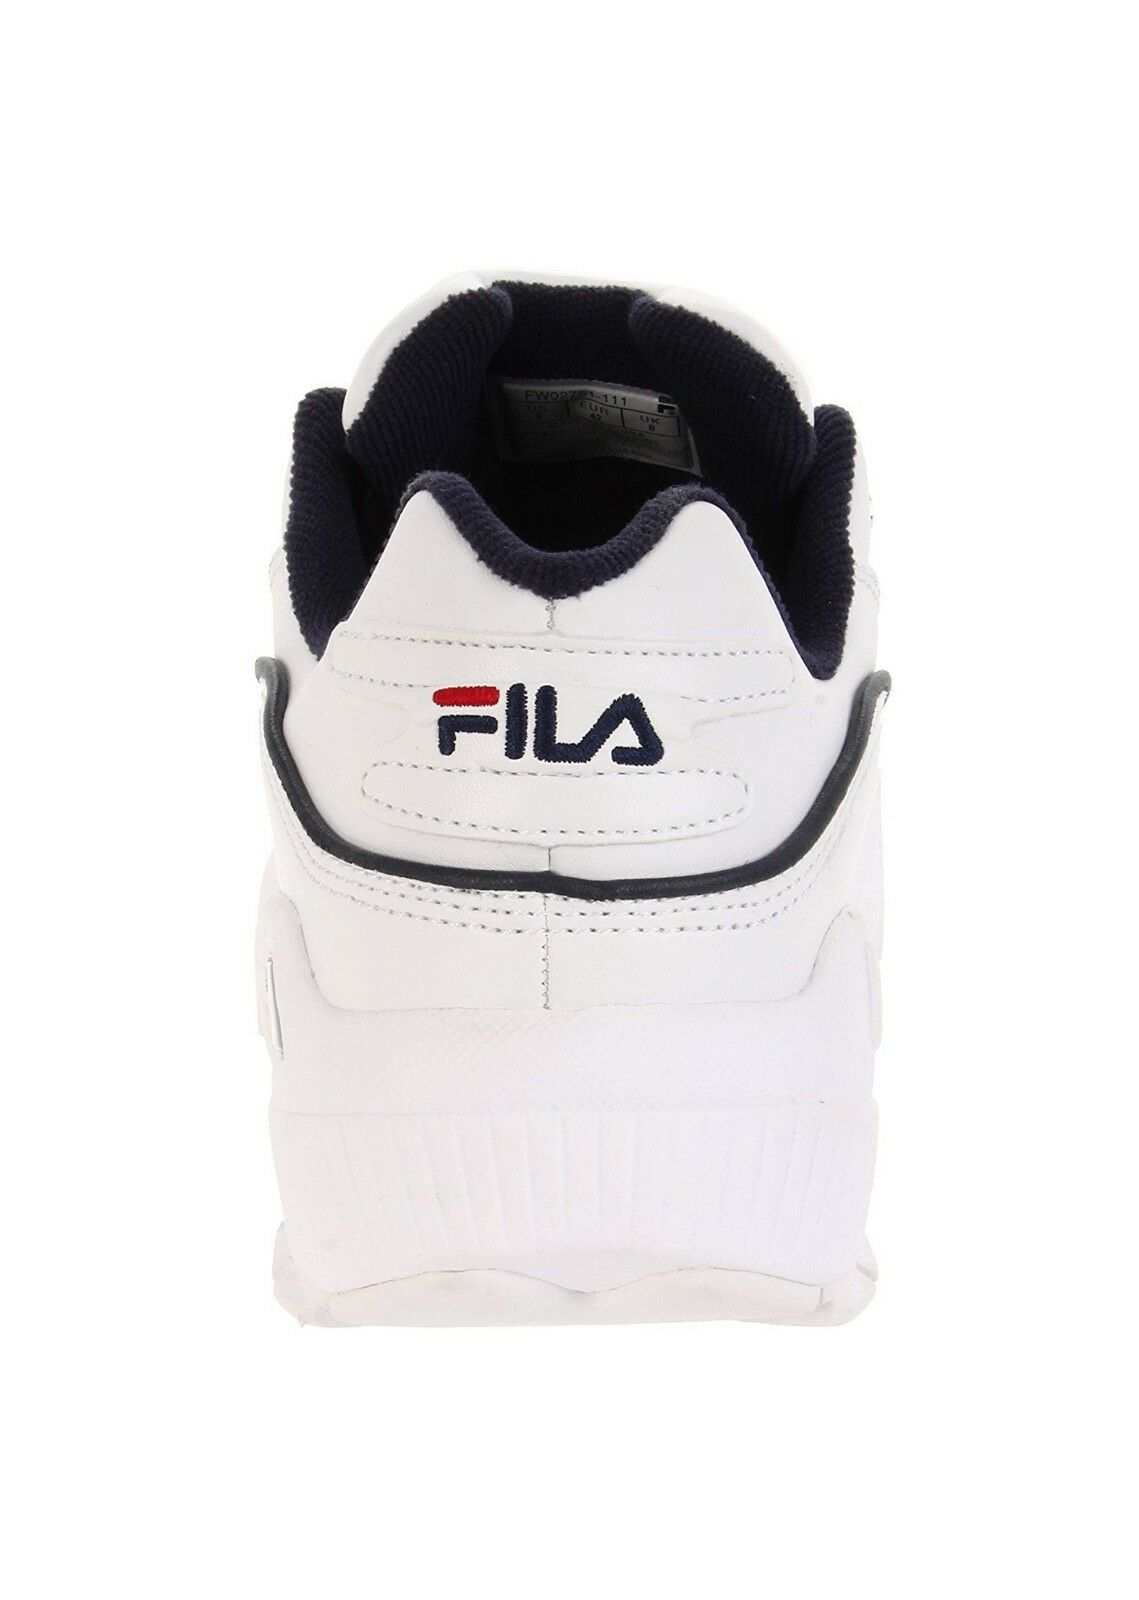 Fila Men/'s Hometown Extra Casual Sneakers Shoe FW02751-111 White//Navy//Red